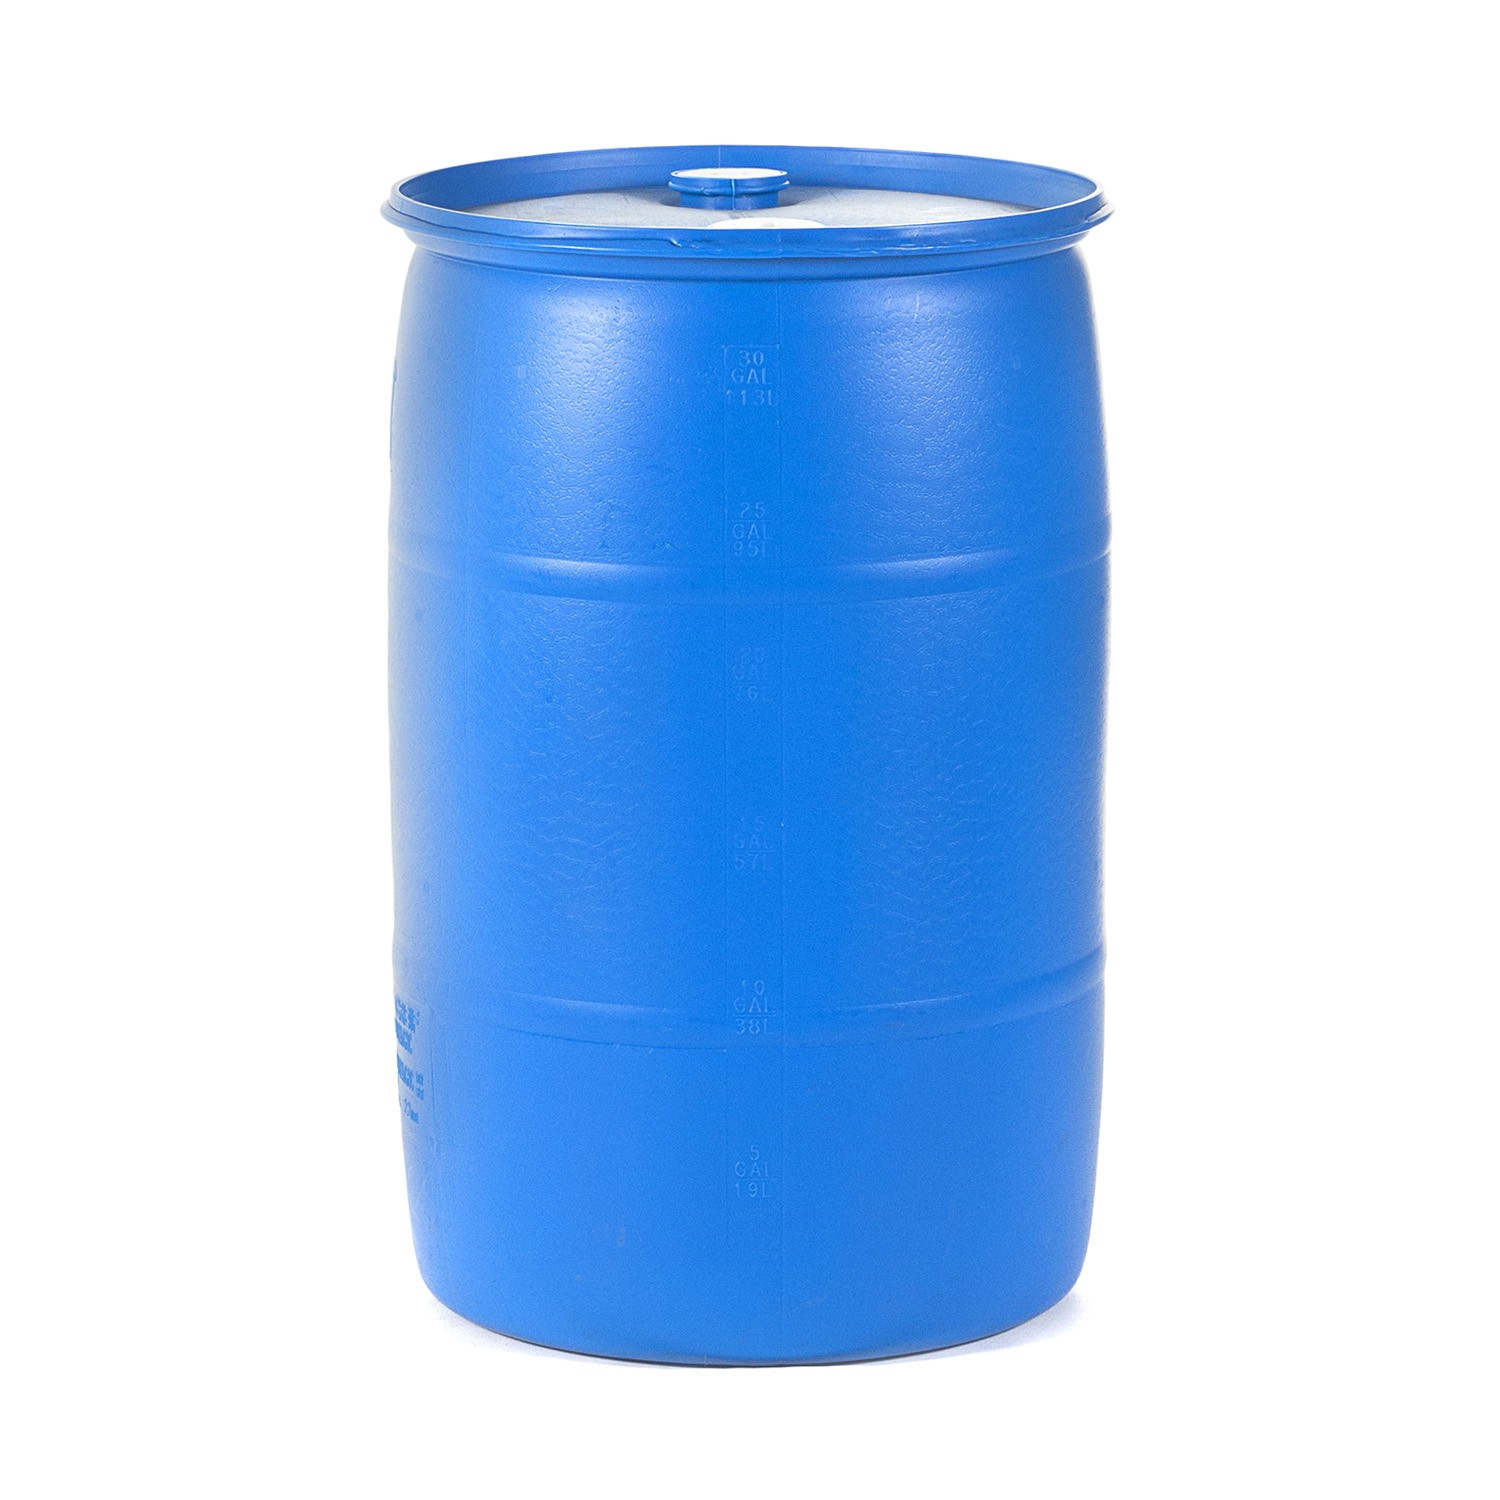 Drum clipart water drum. Barrel gallon